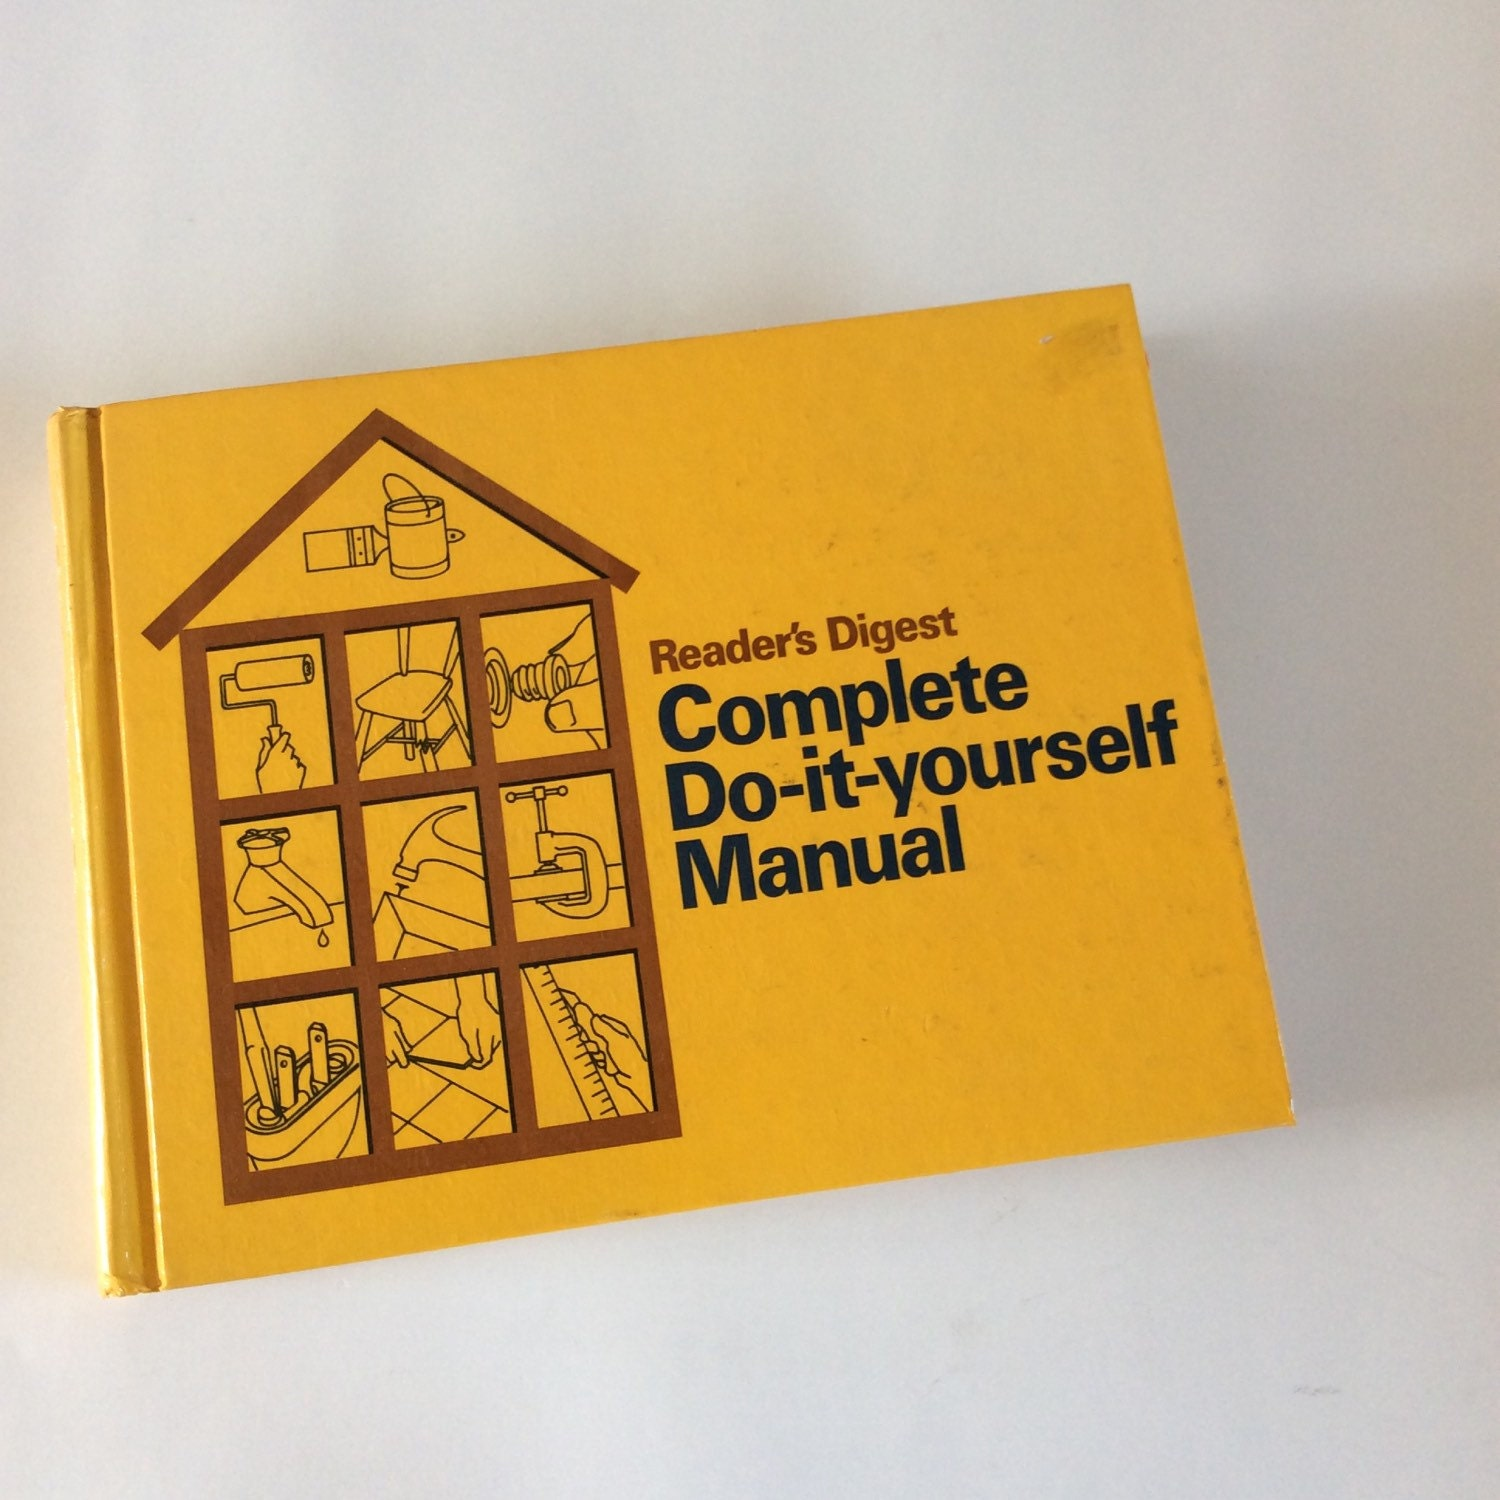 Do it yourself manual book 1970s home manual woodworking zoom solutioingenieria Image collections